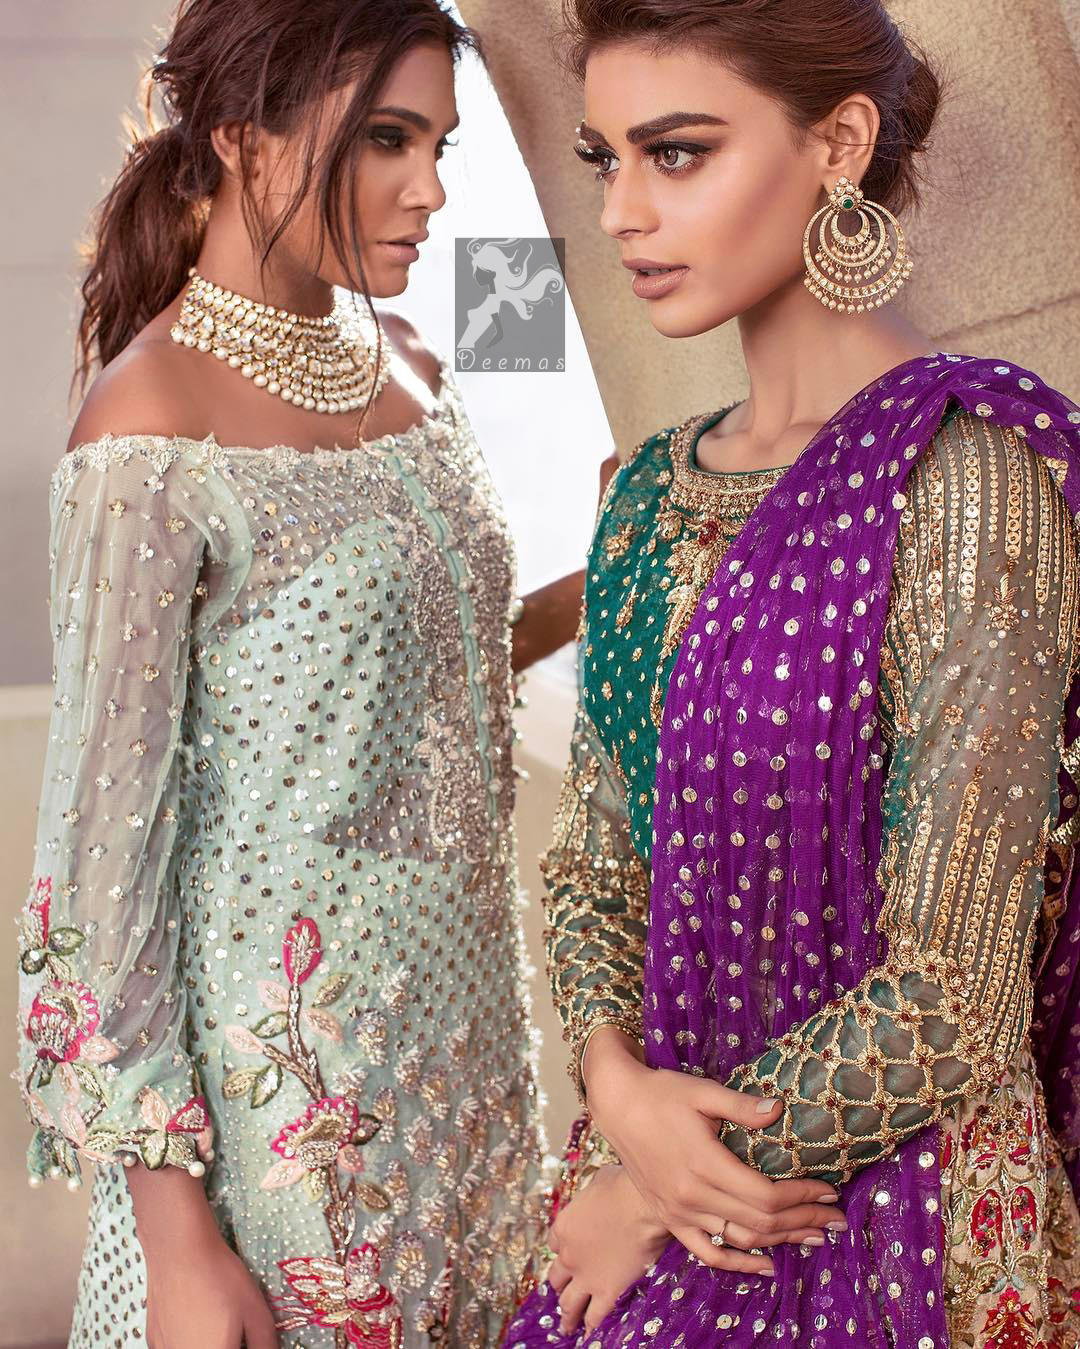 Sweetheart neckline pure crinkle chiffon shirt adorned with embellishment. Embellishment includes majorly light golden, silver, shocking pink and mehndi green shades. Shirt comes with embroidered sharara and net dupatta.